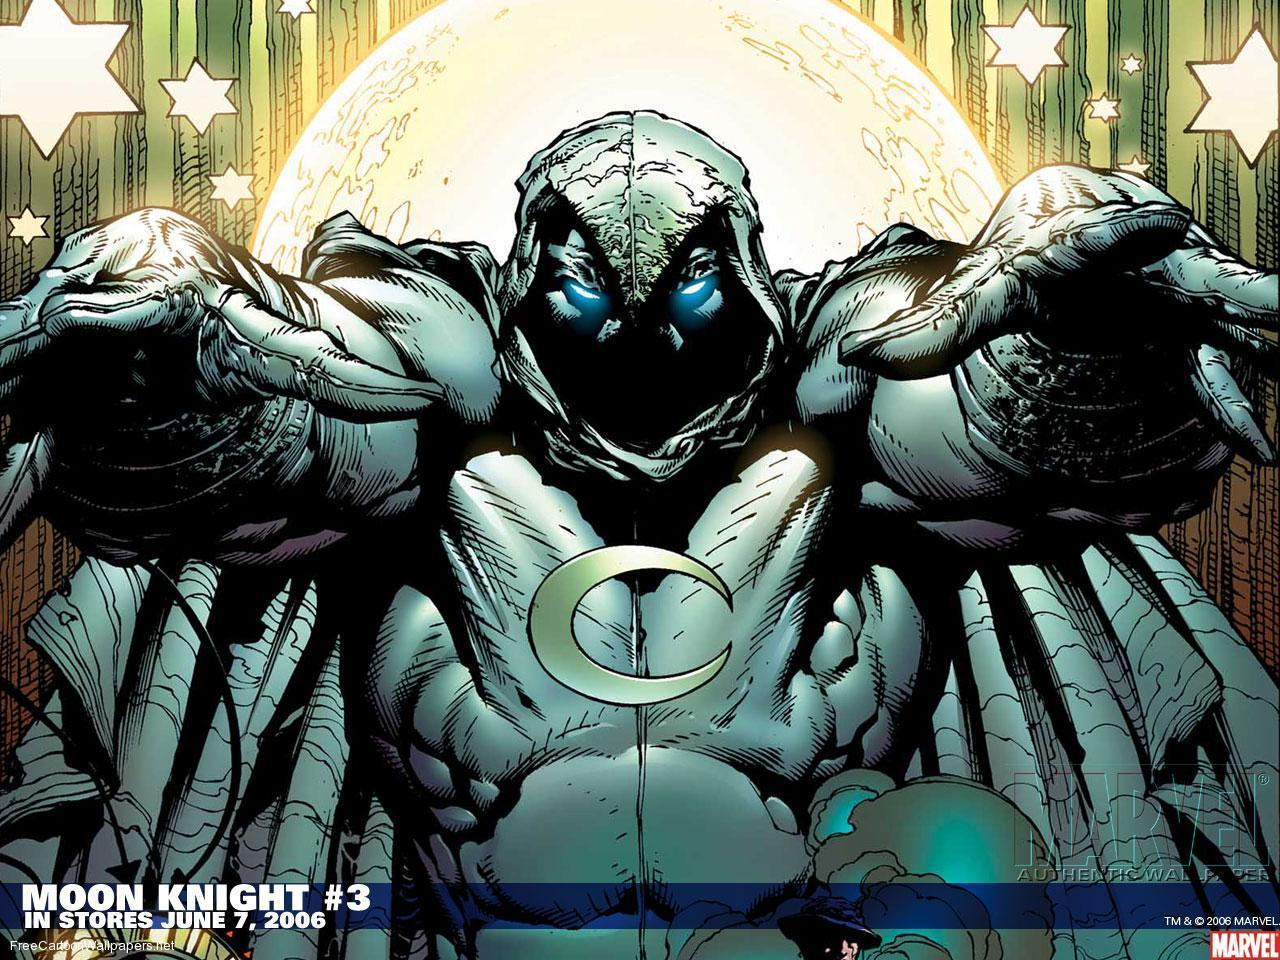 moon knight images moon knight 3 2006 hd wallpaper and